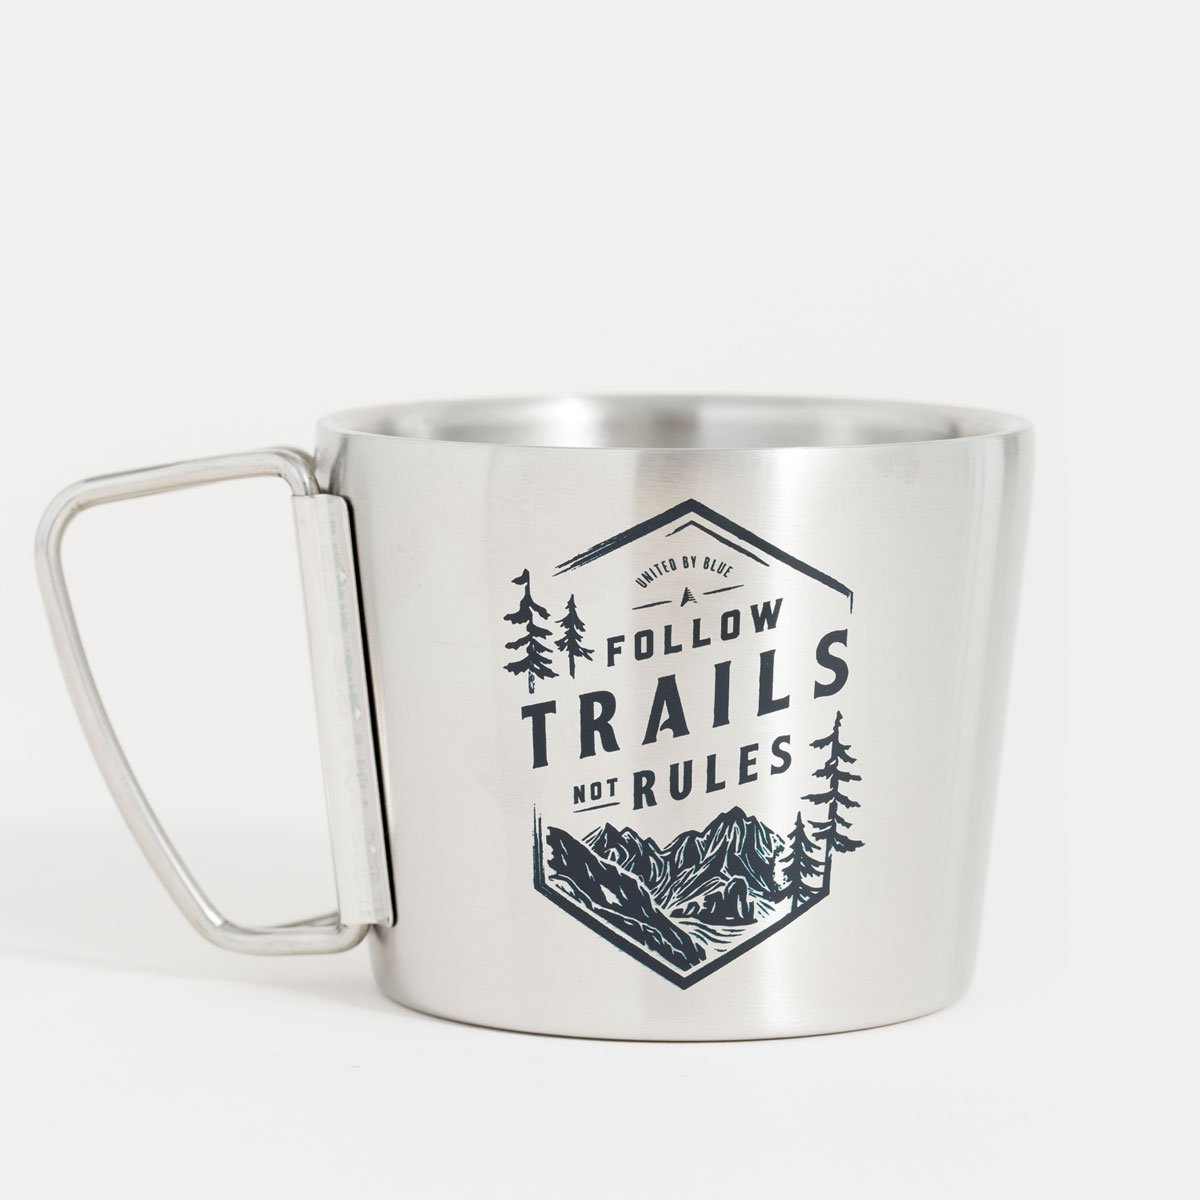 United By Blue | 12 oz Stainless Steel Compass Cup | Follow Trails Not Rules